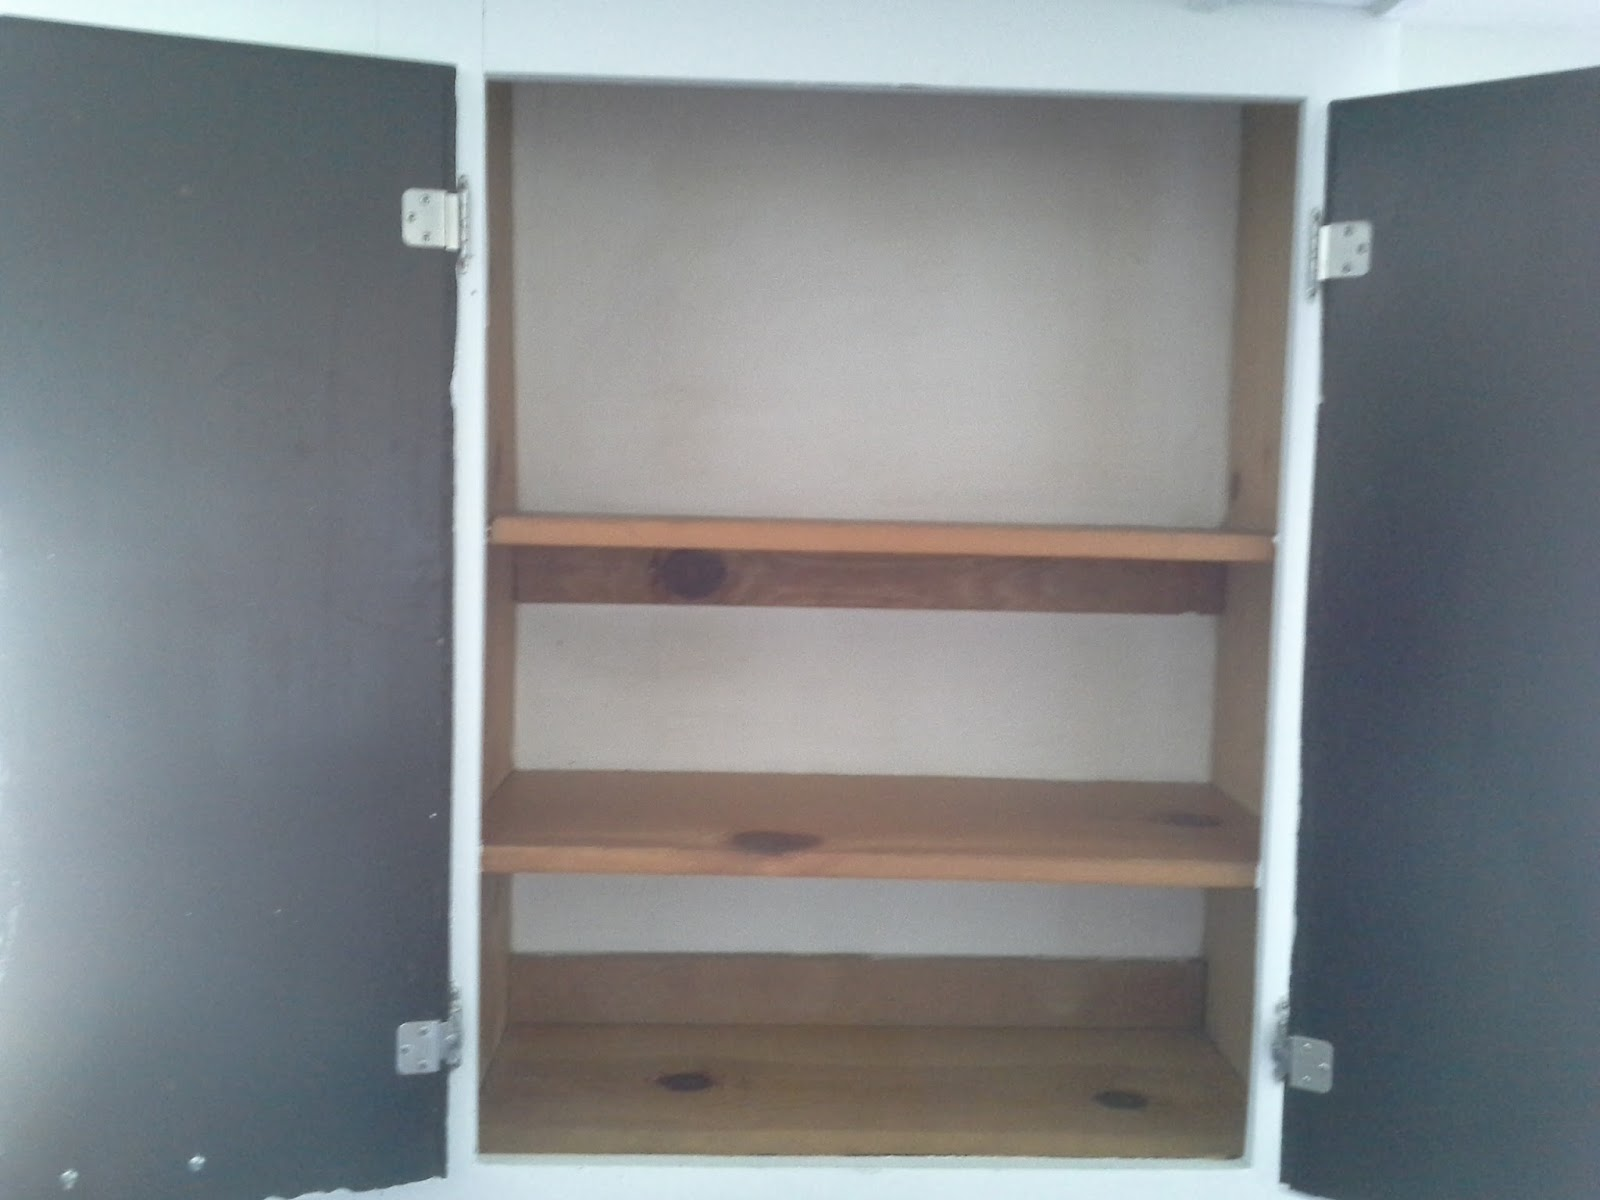 contact paper for kitchen cabinets kitchen 111 contact paper cool lining shelves with contact paper kitchen cabinets with contact paper for kitchen cabinets